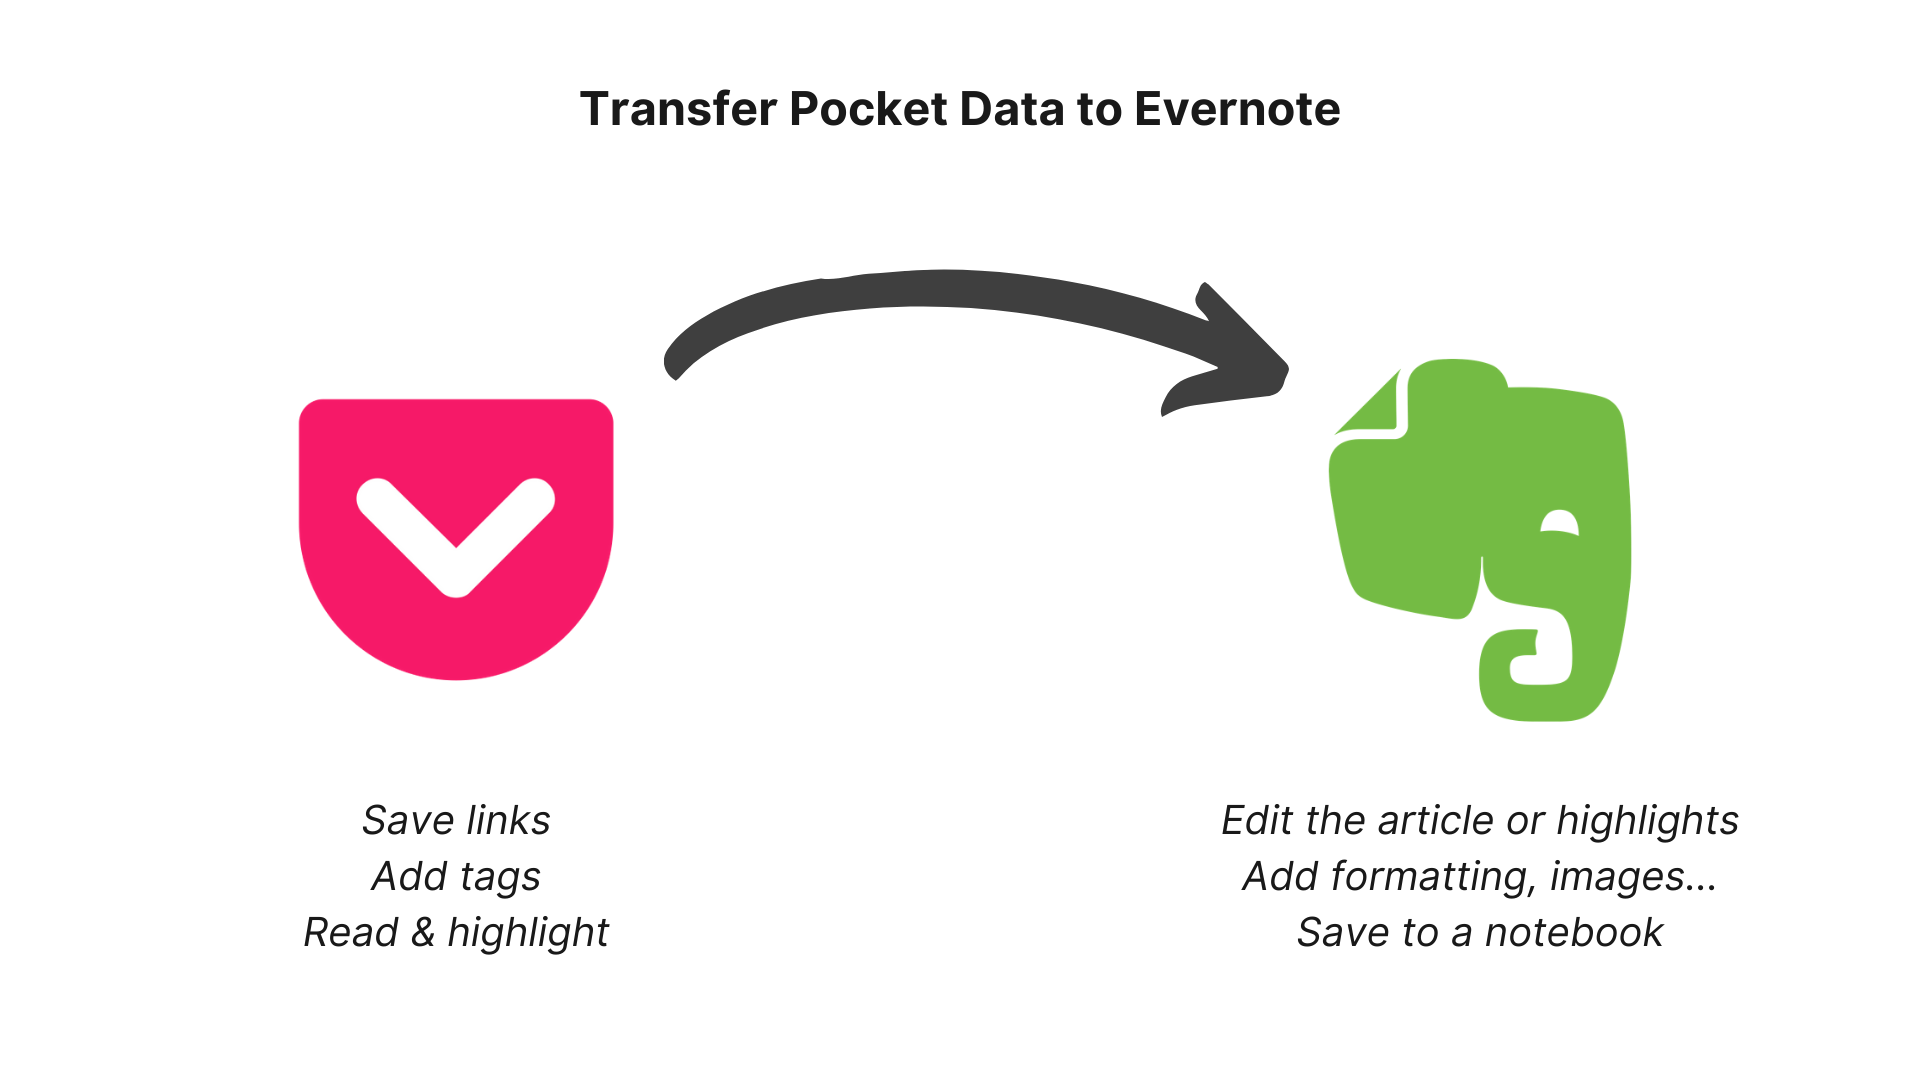 Pocket to Evernote - Data transfer